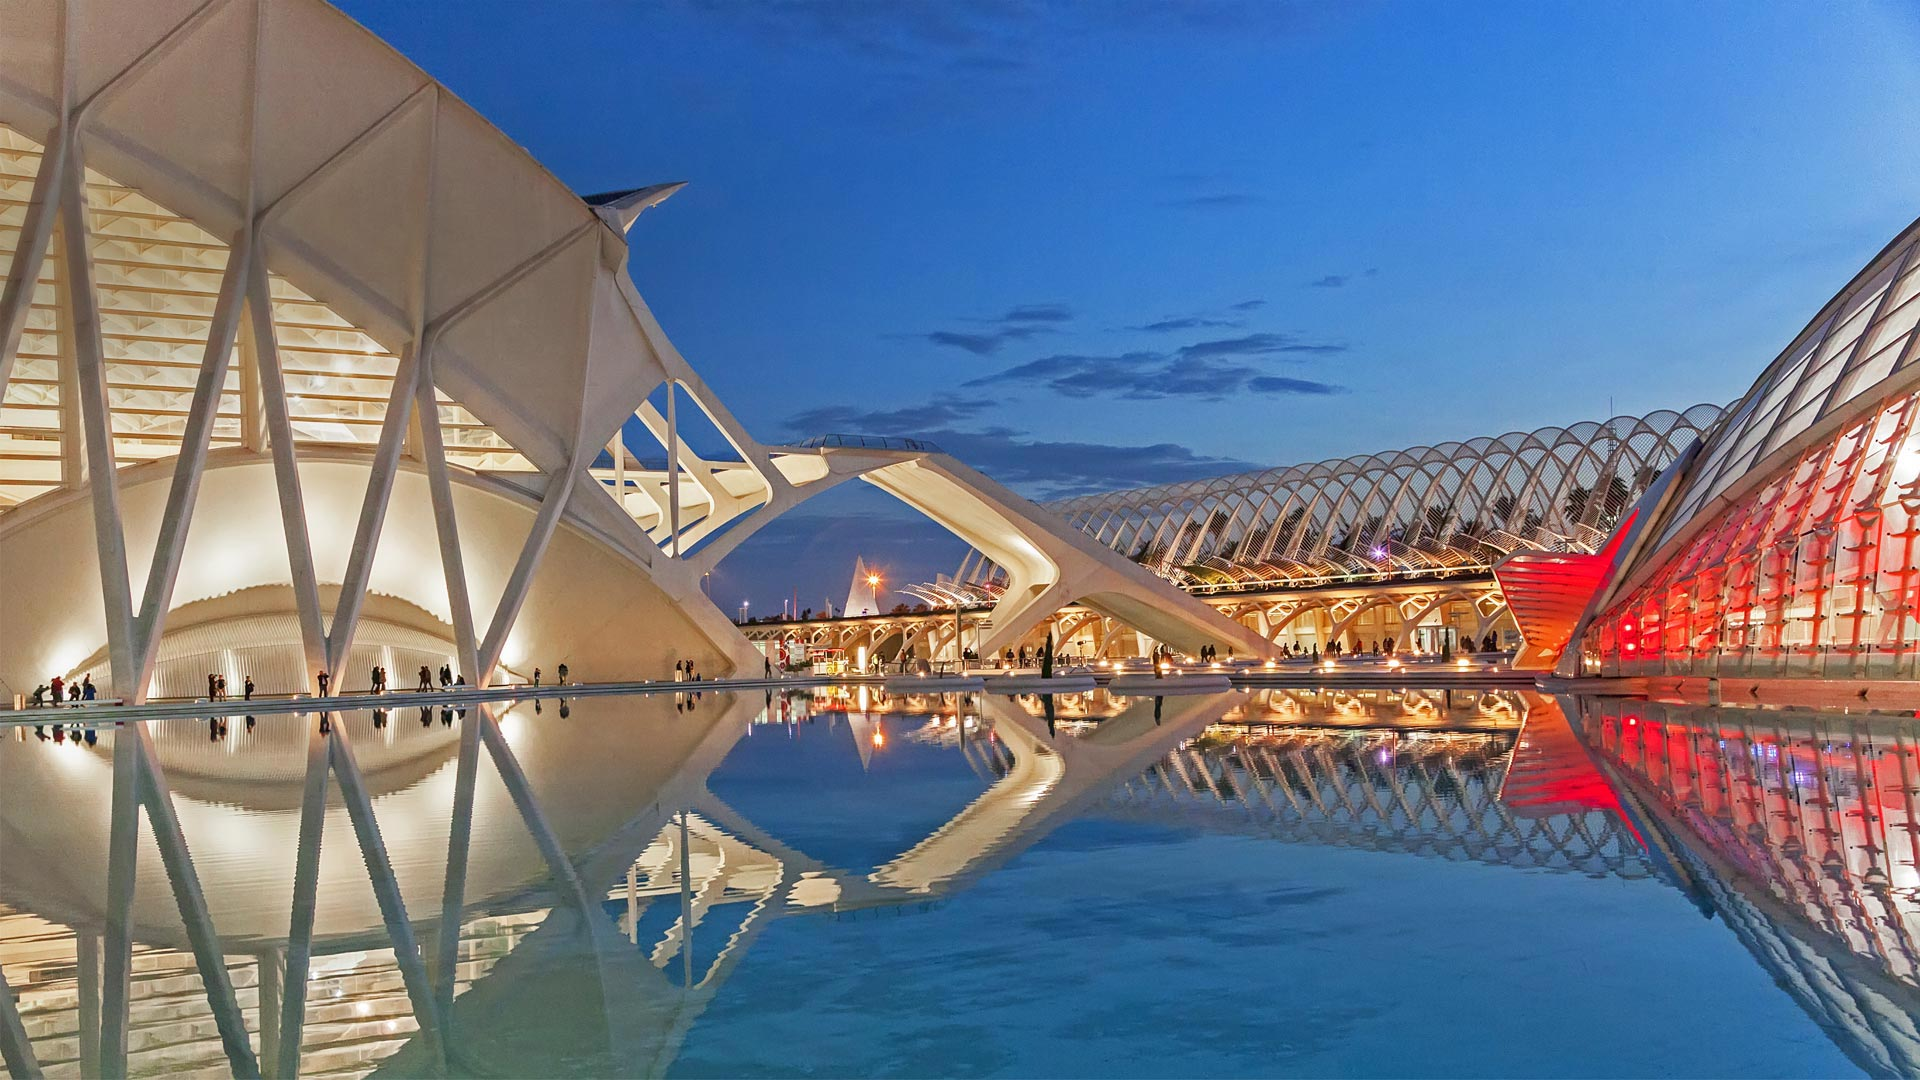 The City of Arts and Sciences in Valencia, Spain (© MAIKA 777/Getty Images)(Bing United States)